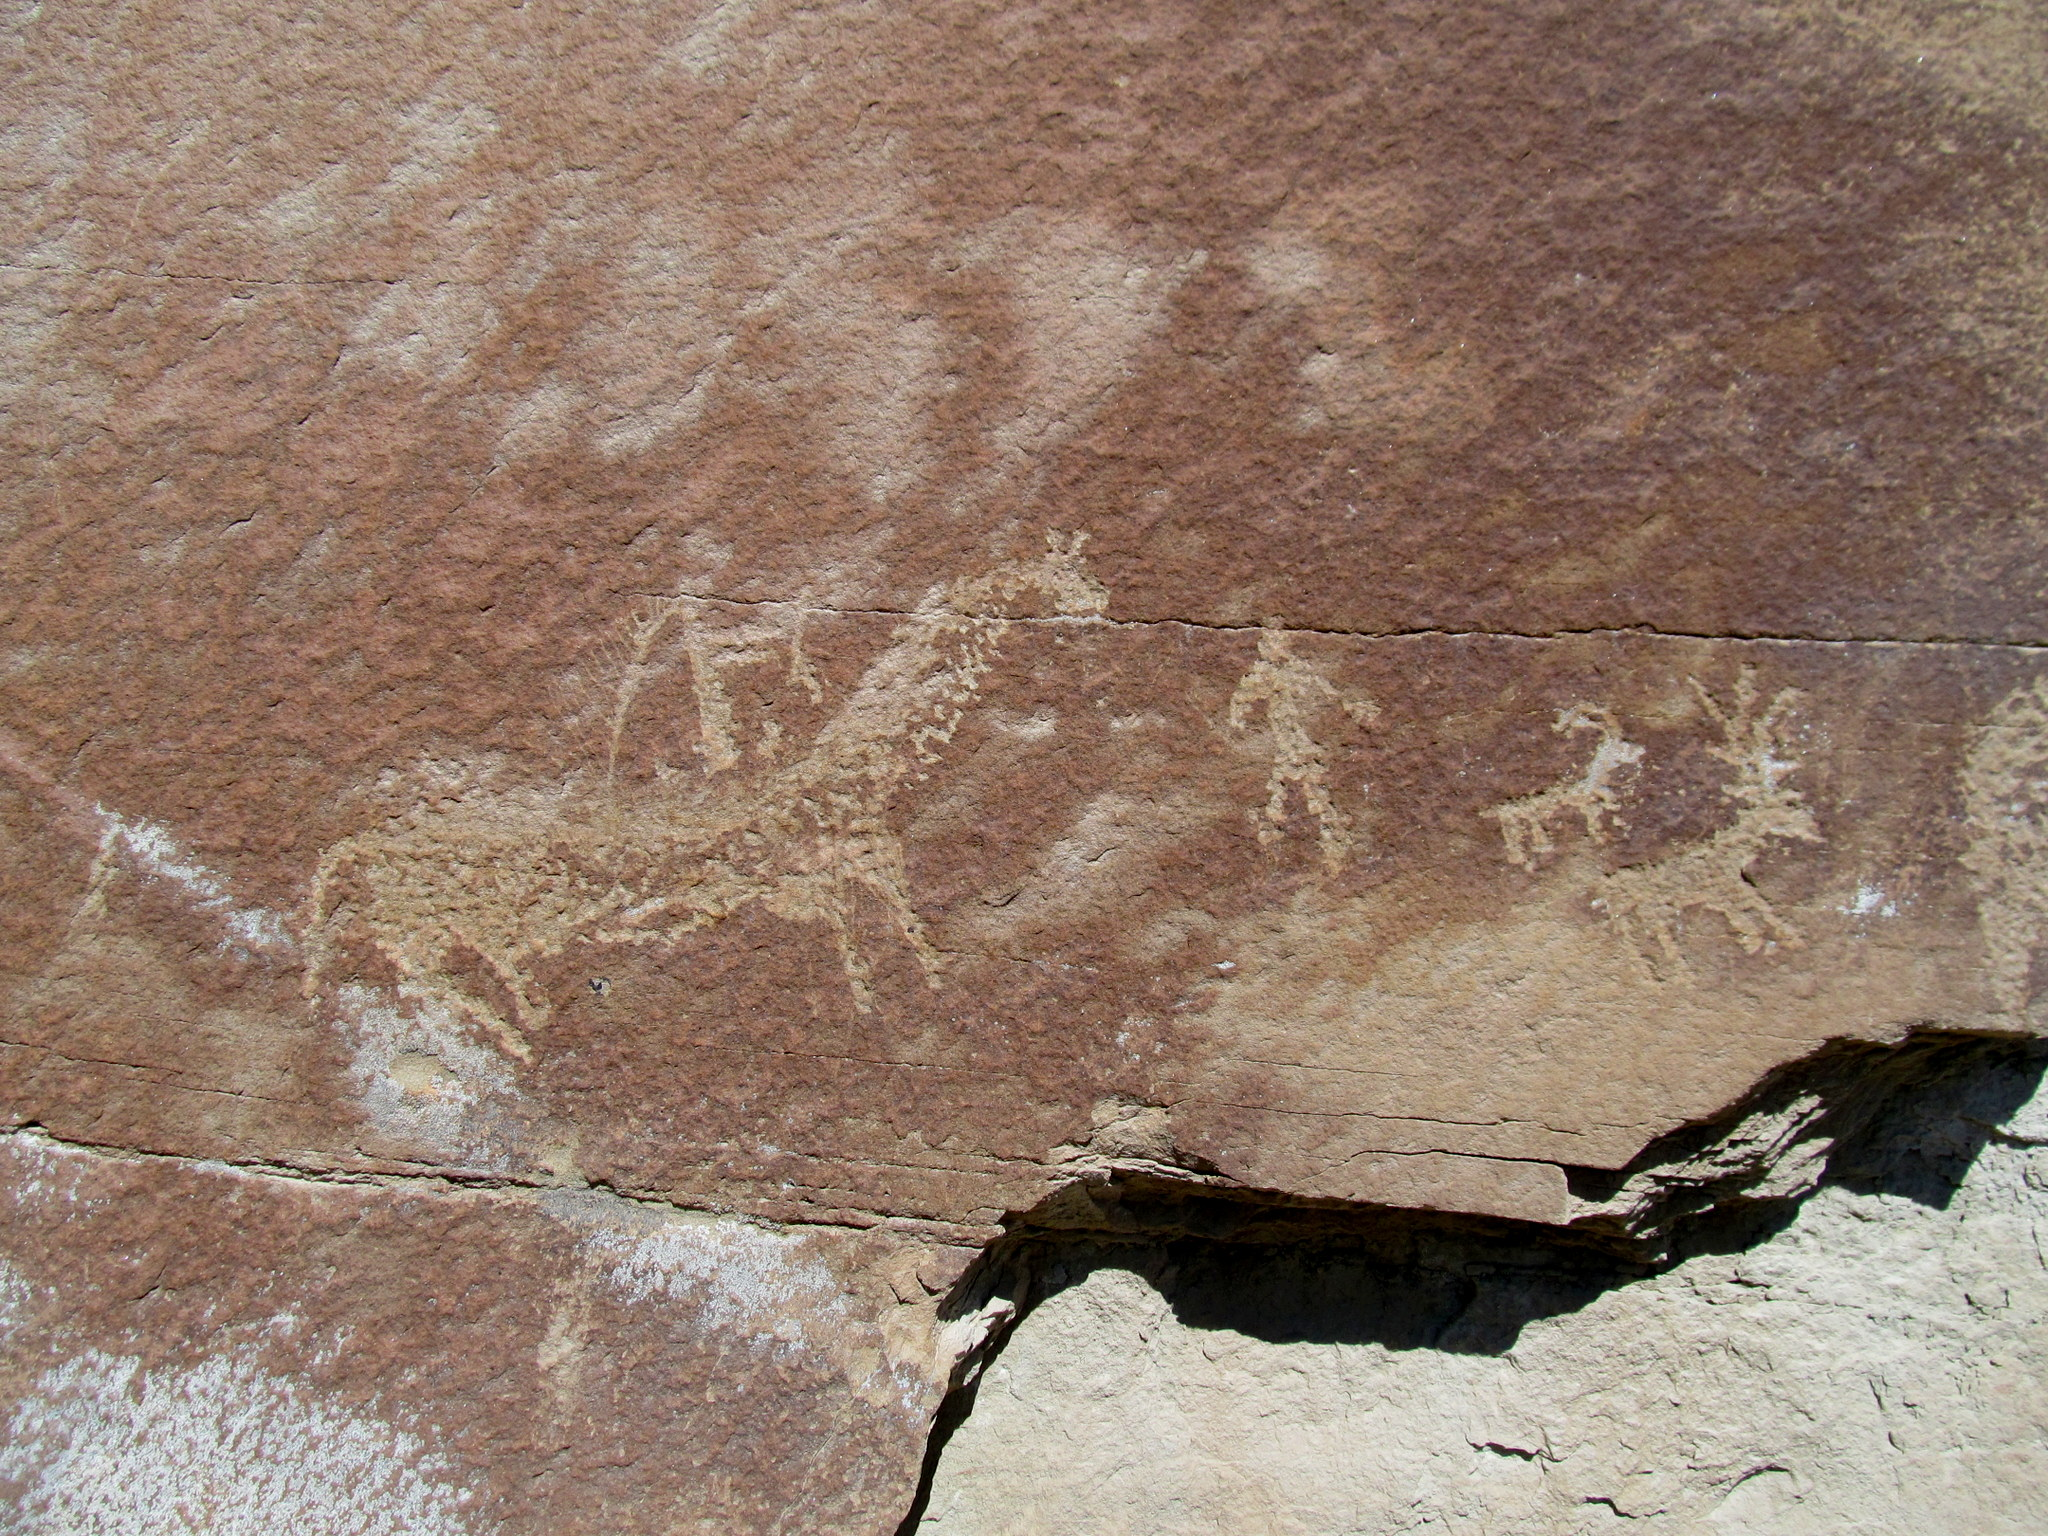 Photo: Ute petroglyphs